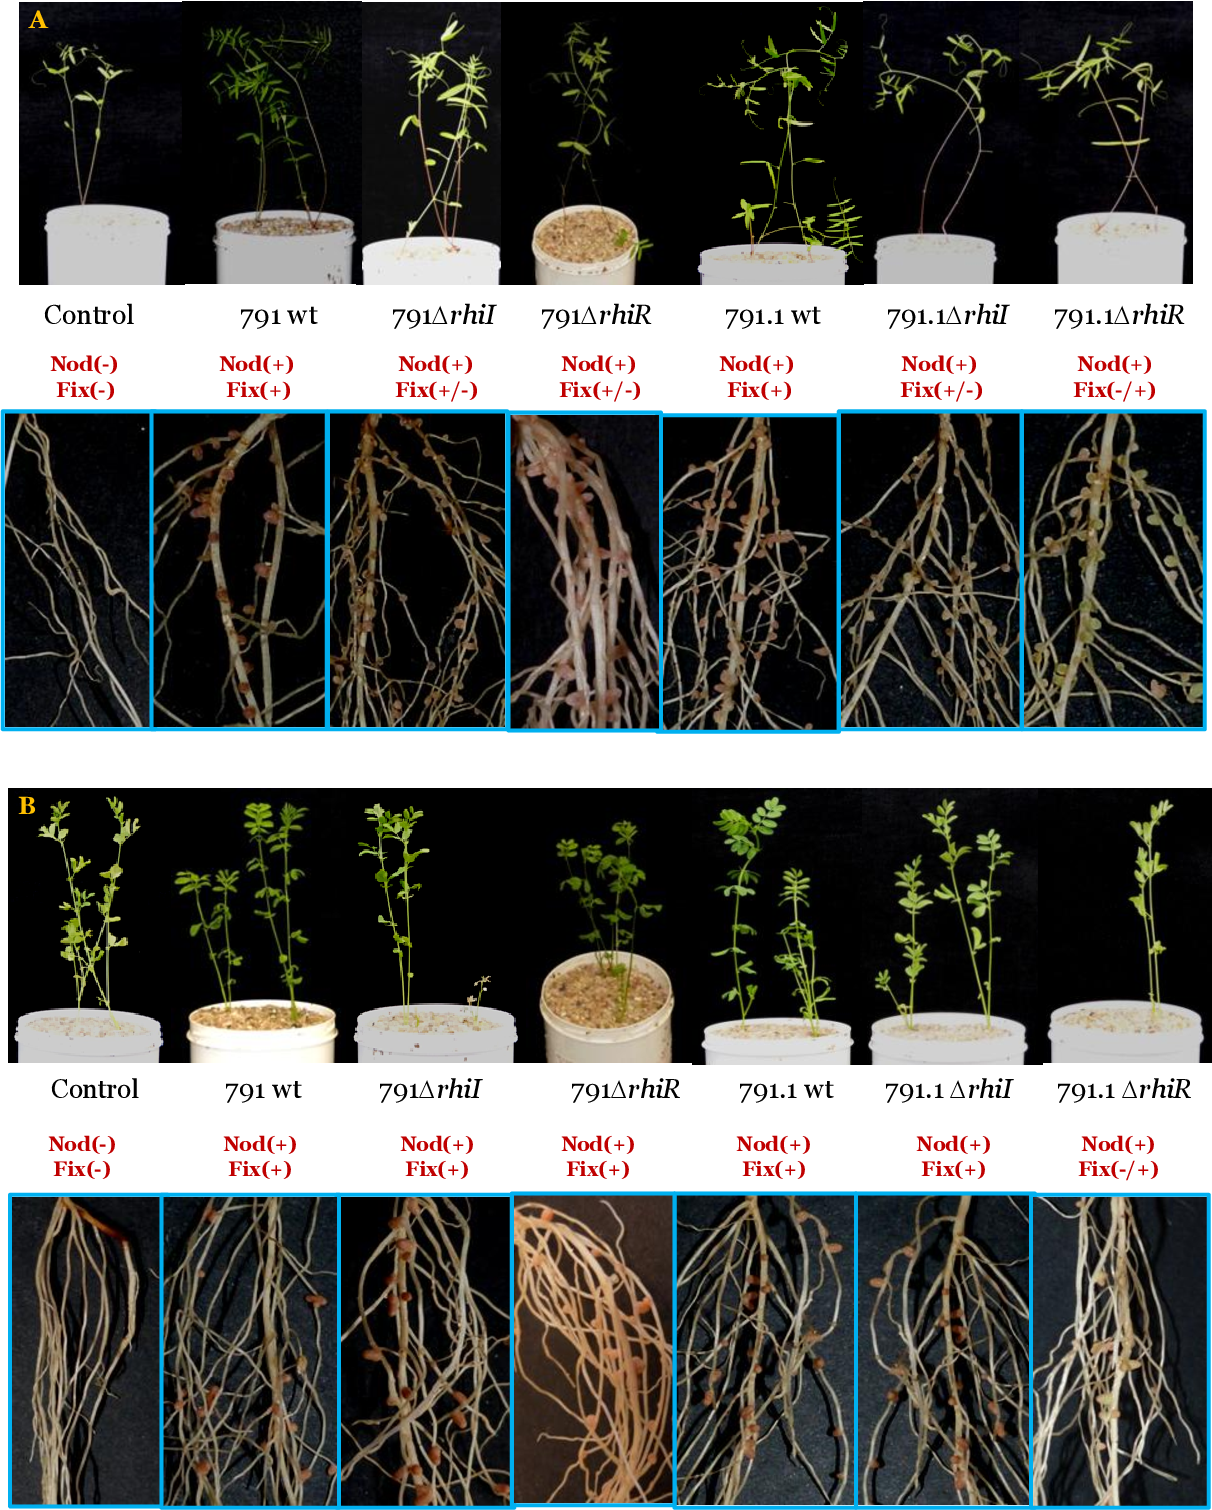 Figure 33. Effect of the legume host on the relevance of rhiRI genes on symbiotic performance. Upper pictures shows the aerial part of vetch (A) or lentil (B) plants 21 days after inoculation, whereas the lower pictures show a detail of the roots corresponding to each of the strains tested.